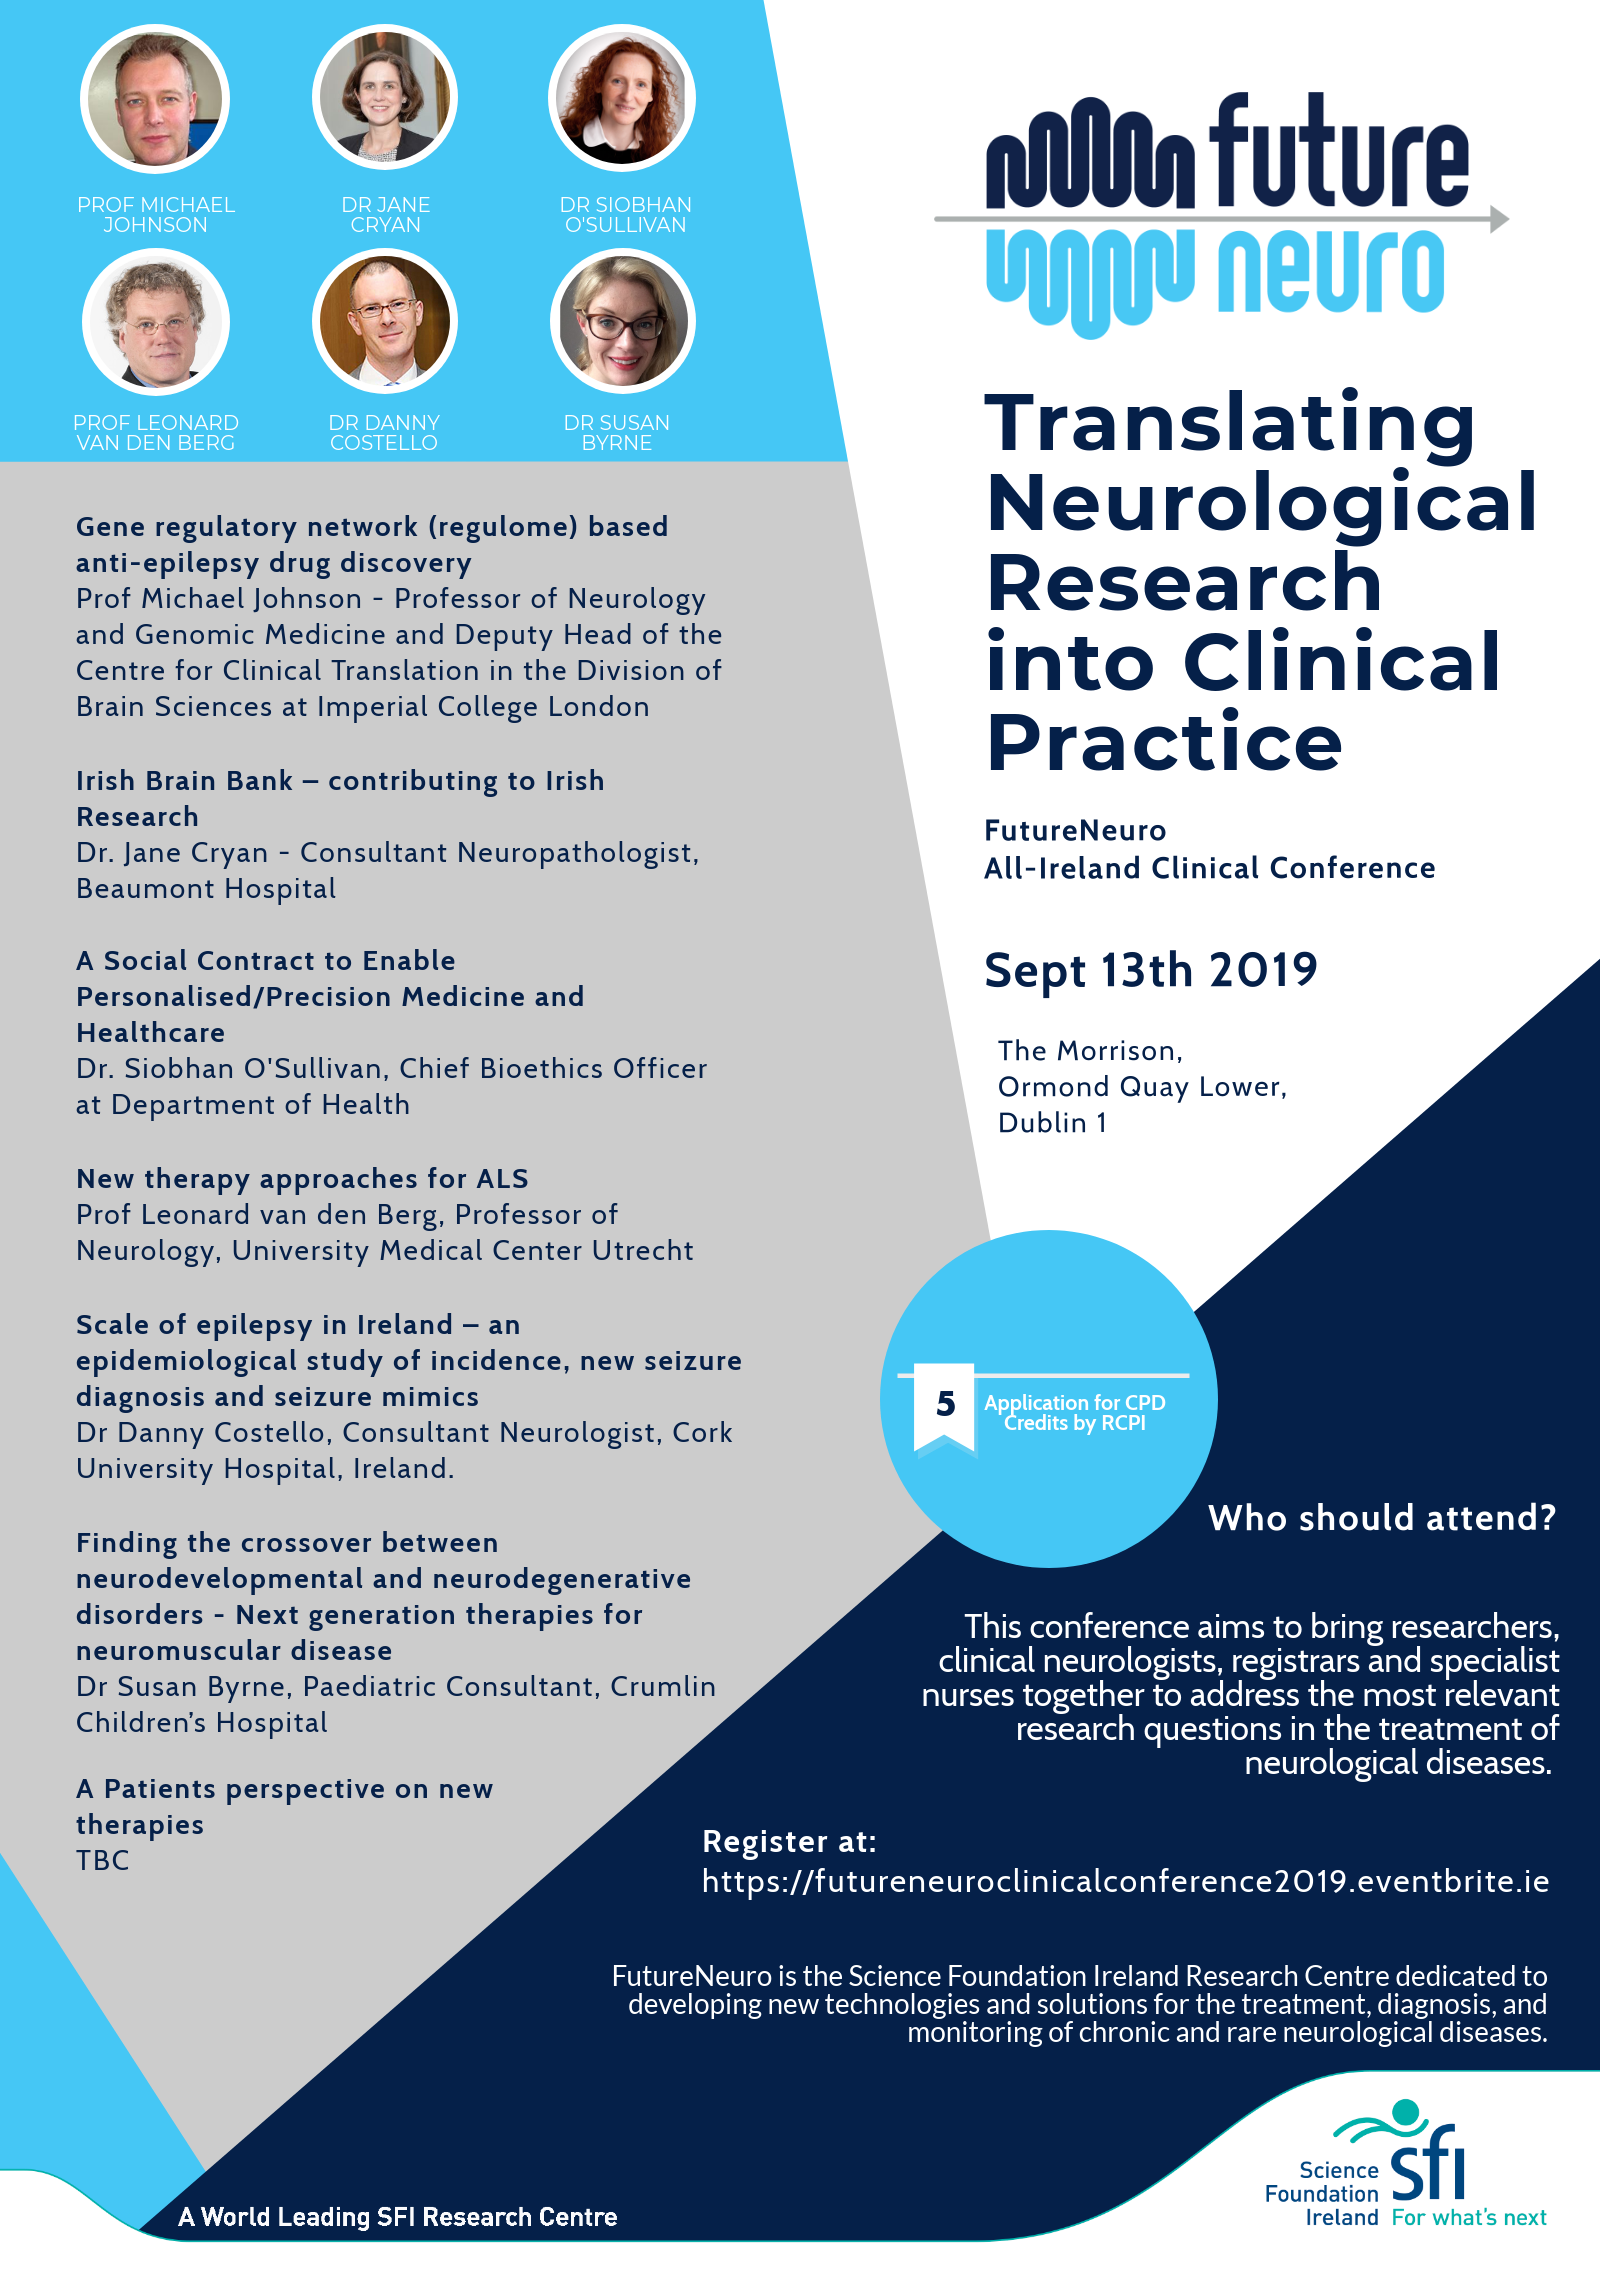 Image of Clinical Conference Poster